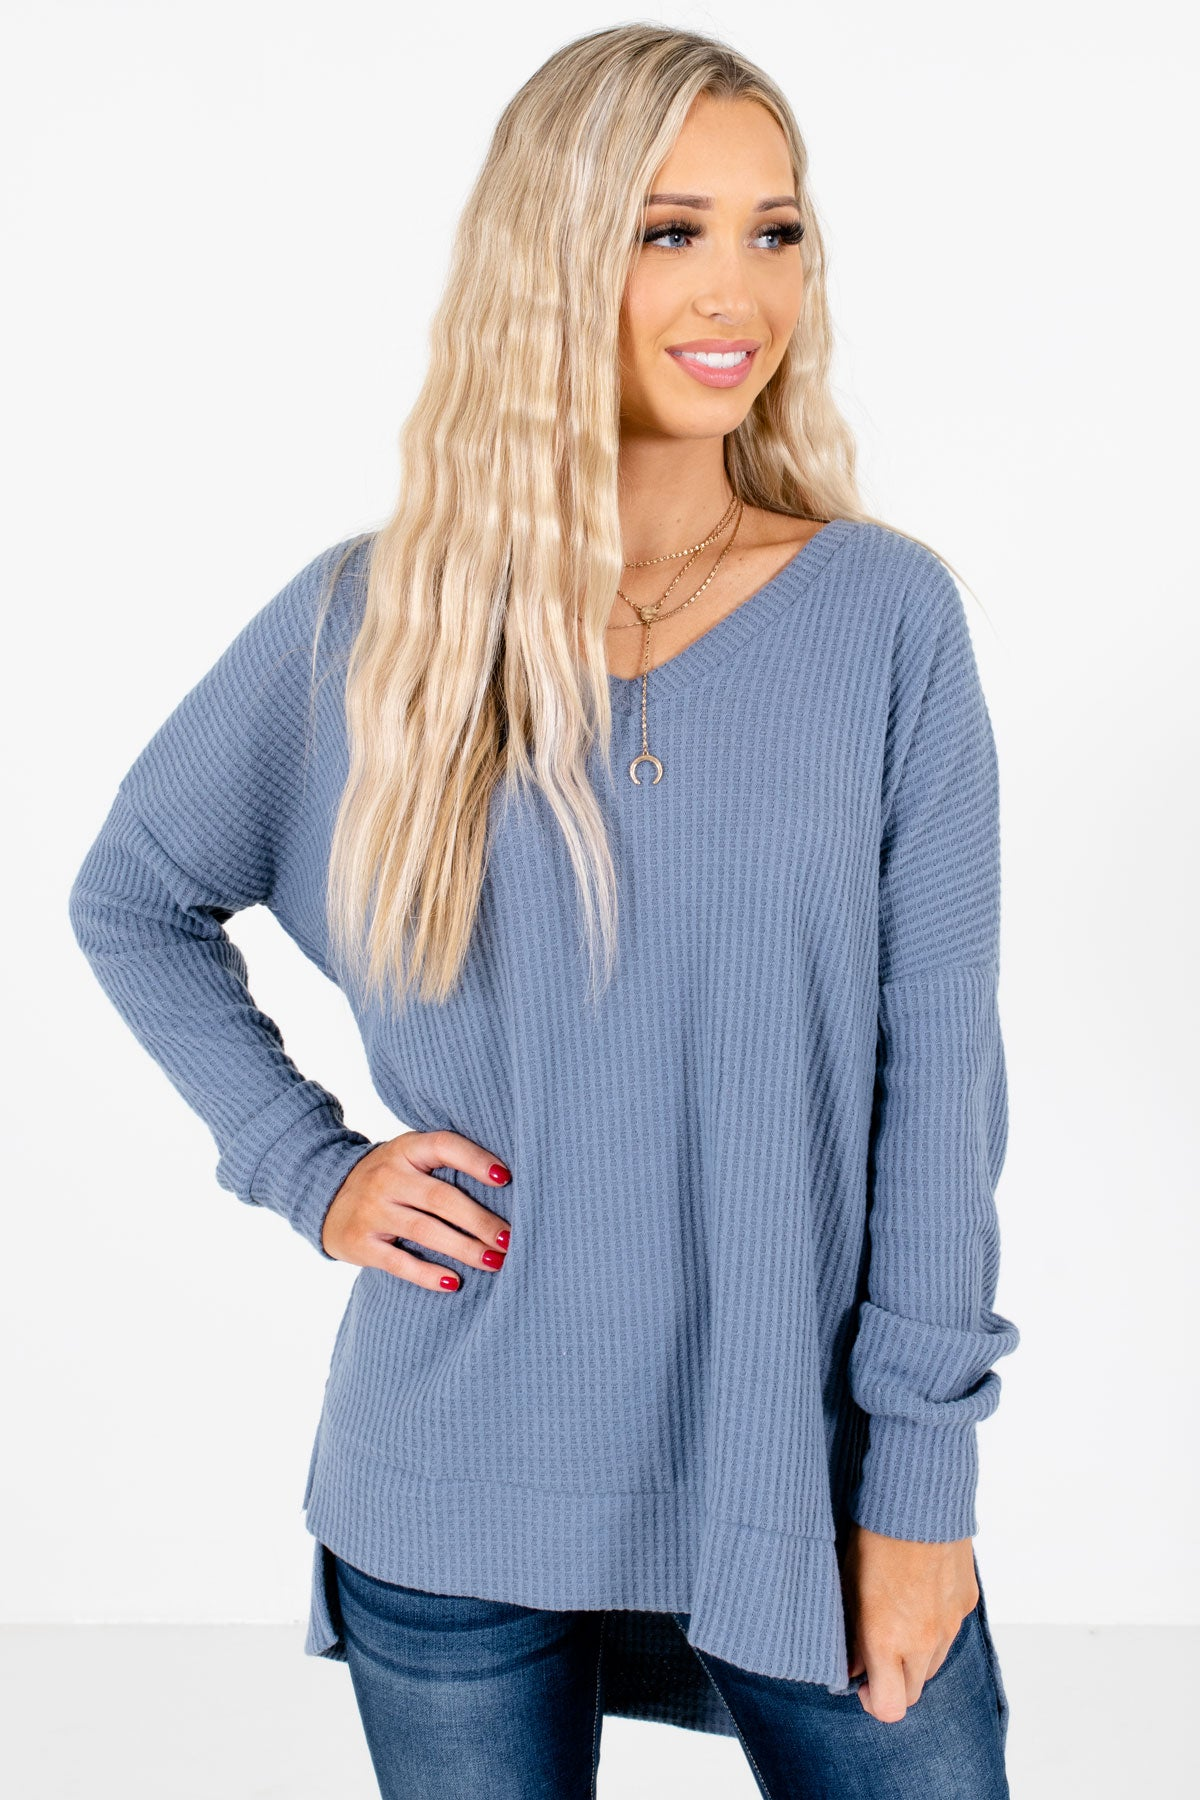 Blue High-Quality Waffle Knit Material Boutique Tops for Women